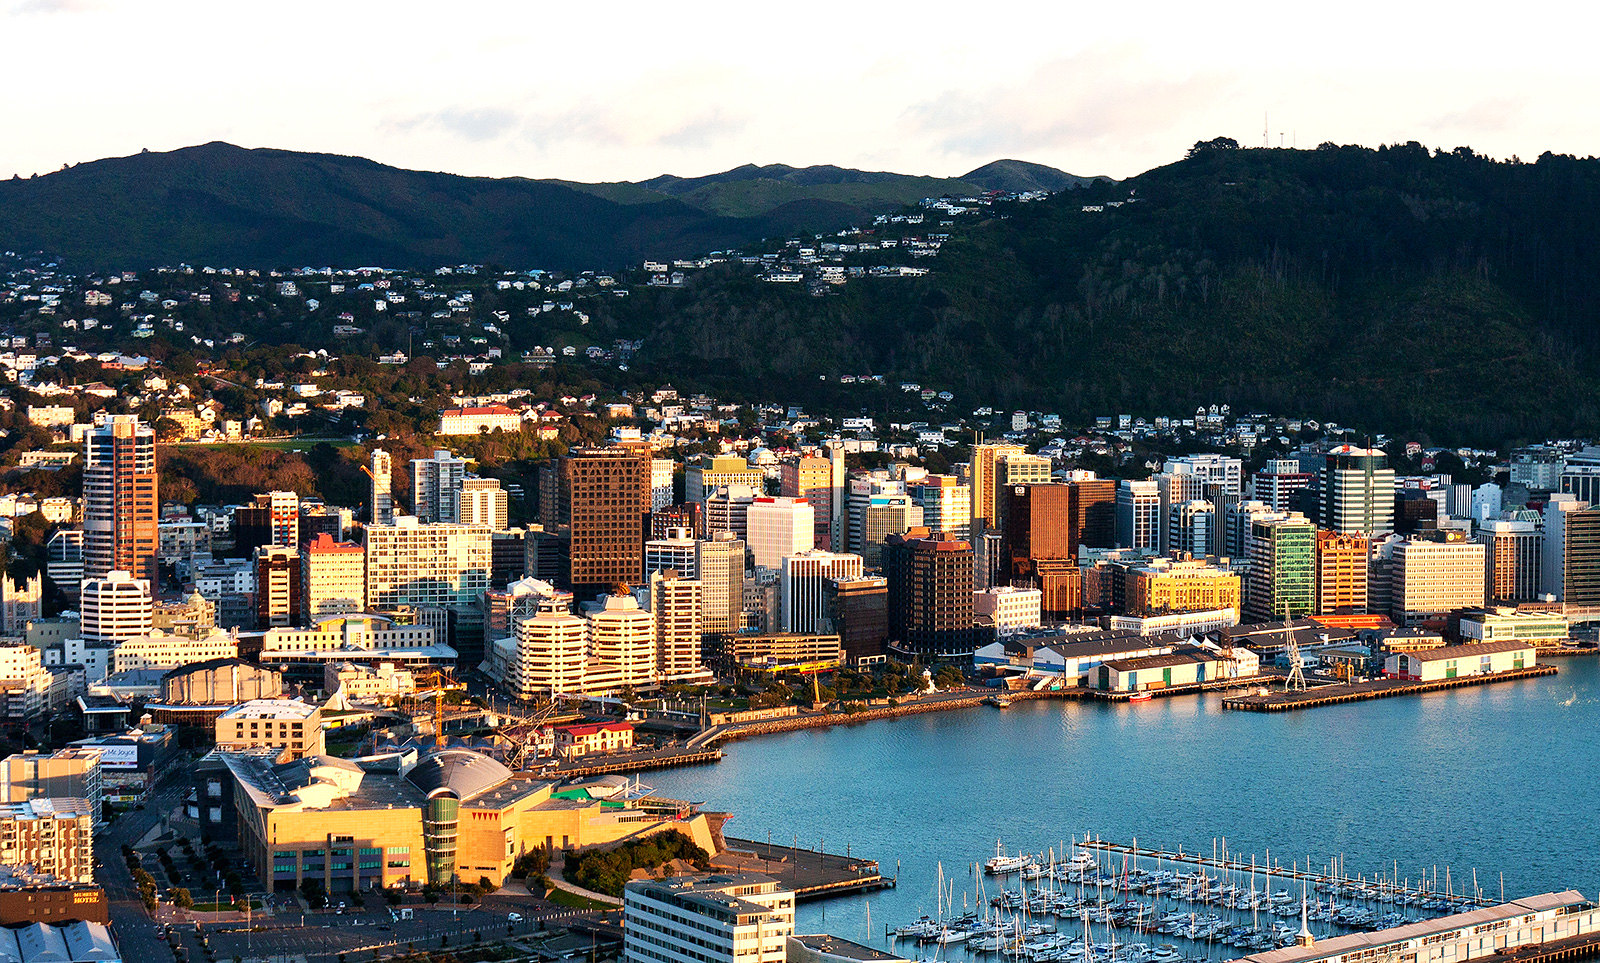 A photo of the wellington Waterfront, with the Central City behind, taken from Mt Victoria.